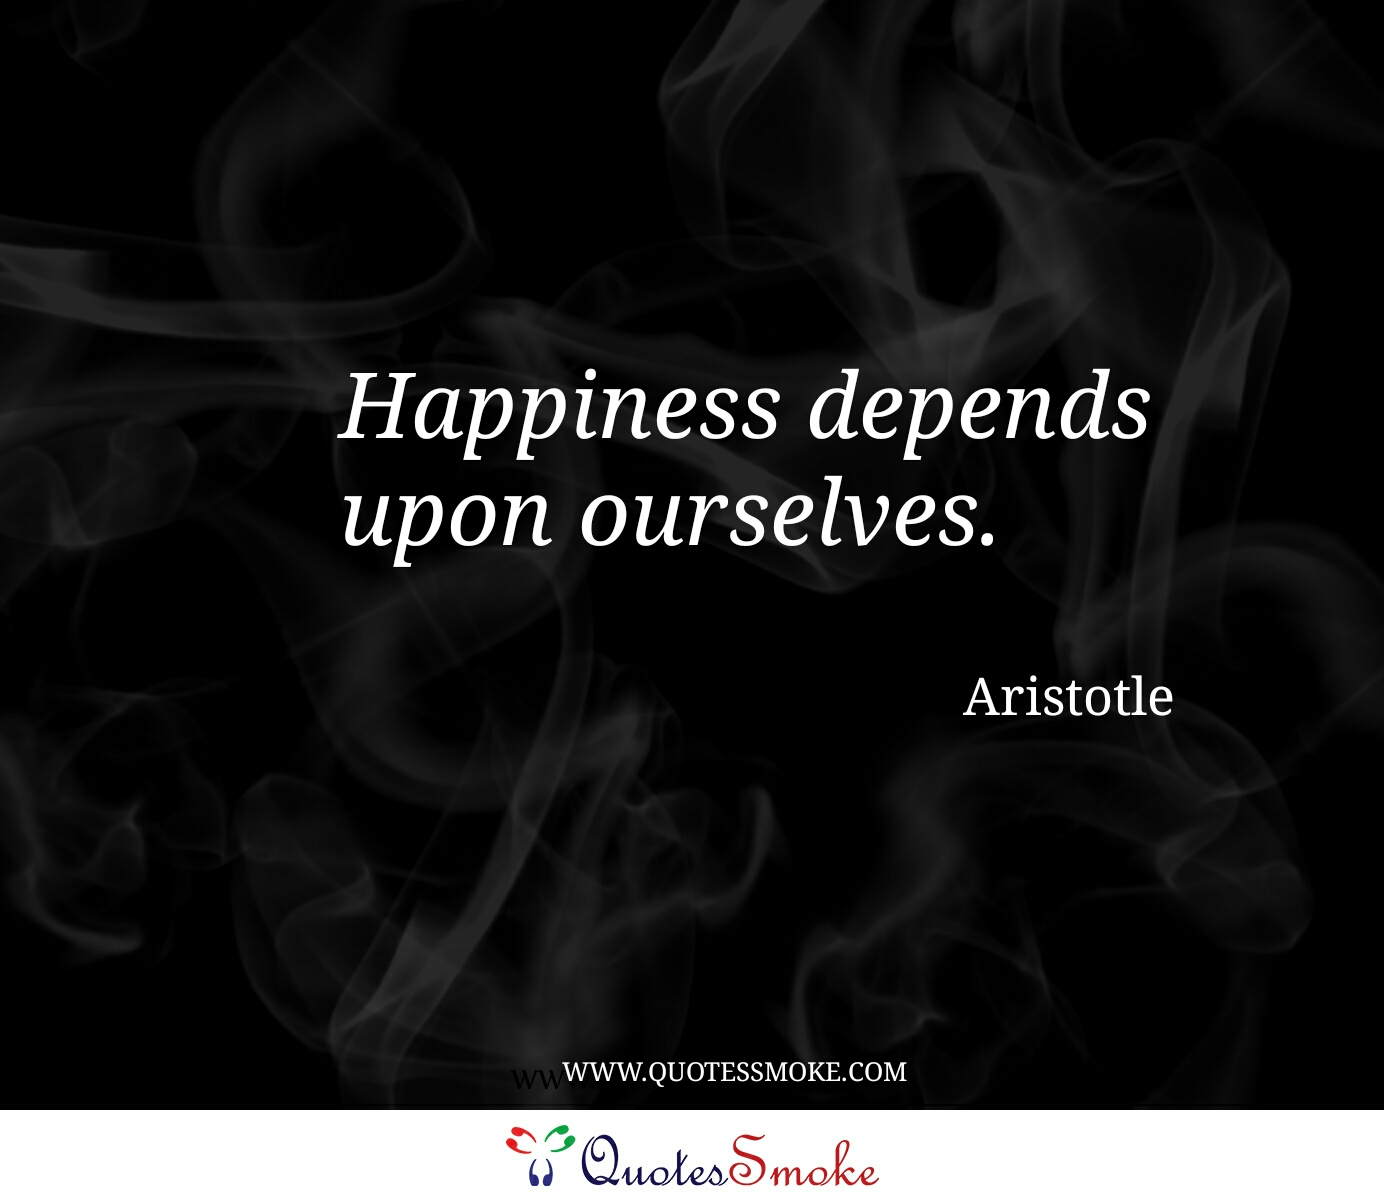 Aristotle Quotes On Happiness: 101 Aristotle Quotes On Wisdom, Inspiration And Life You